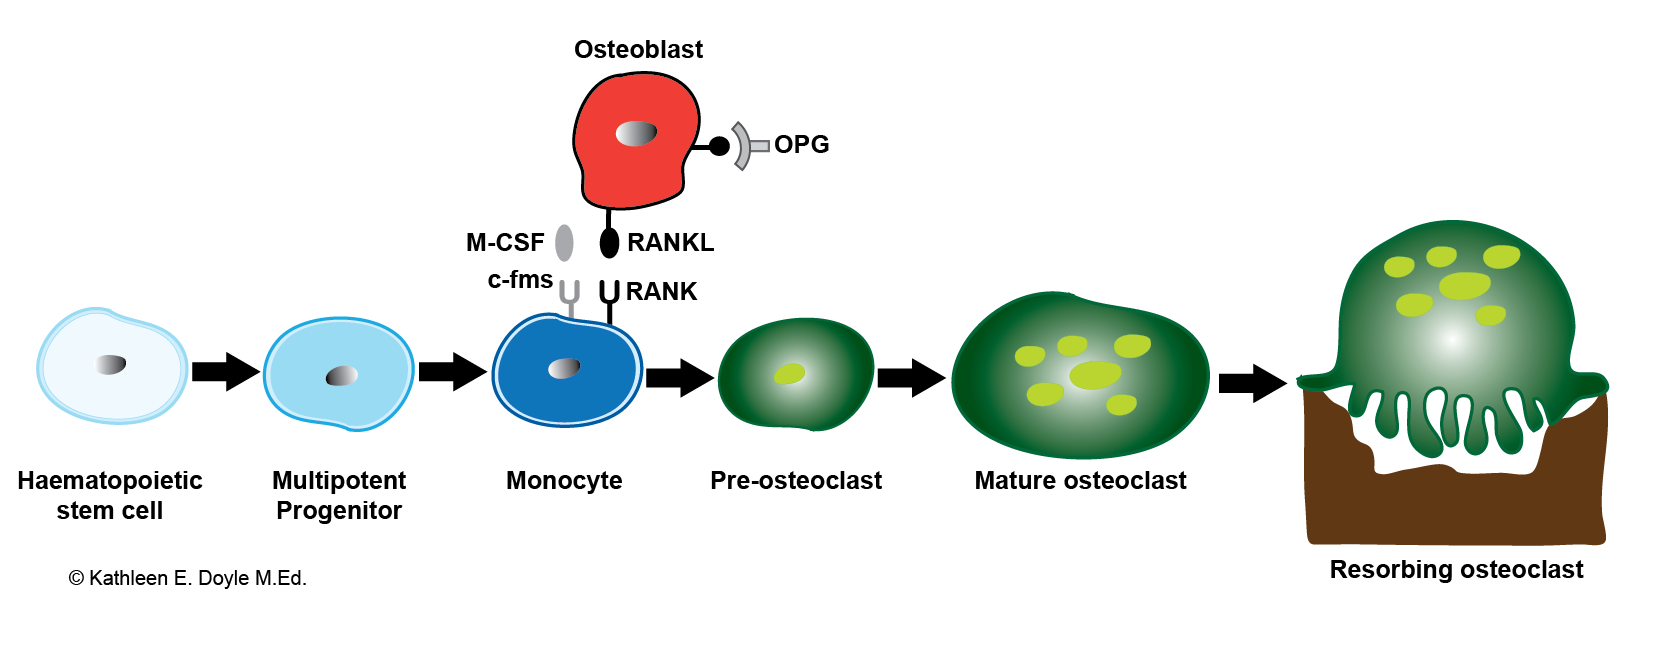 Schematic illustration of osteoclastogenesis. Bone-resorbing osteoclasts originate from hemopoietic cells of the monocyte–macrophage lineage under control of bone- forming osteoblasts. RANKL, the receptor activator of NF-κB ligand; M-CSF, macrophage colony stimulating factor; OPG, osteoprotegrin.